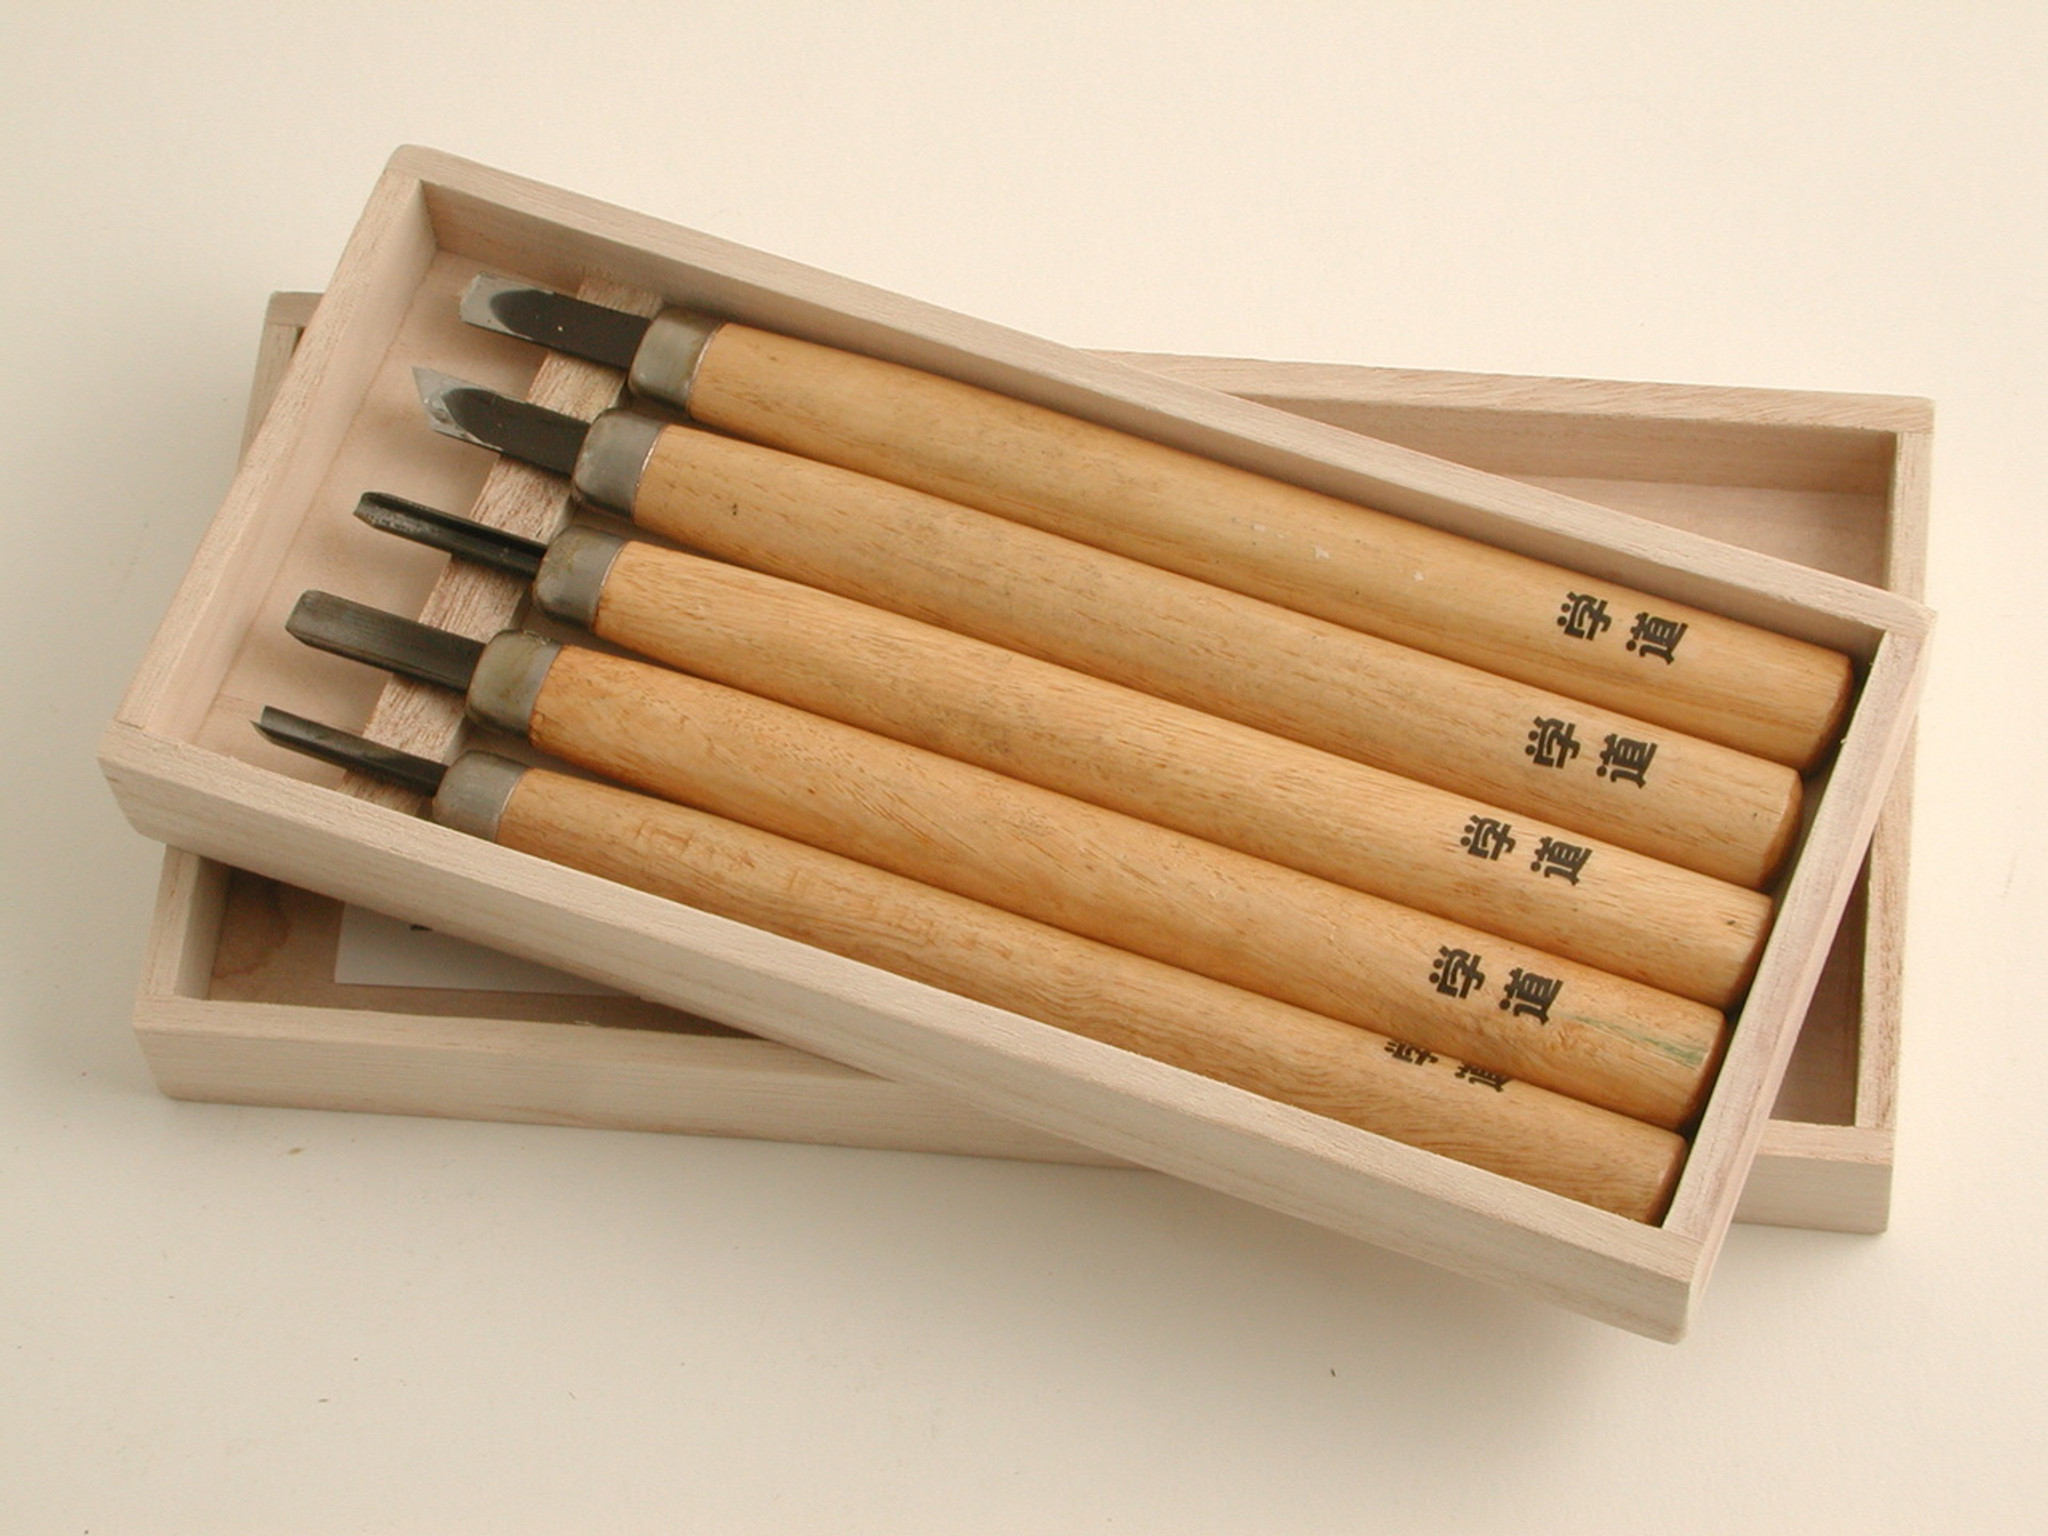 Japanese carving tools set of 5